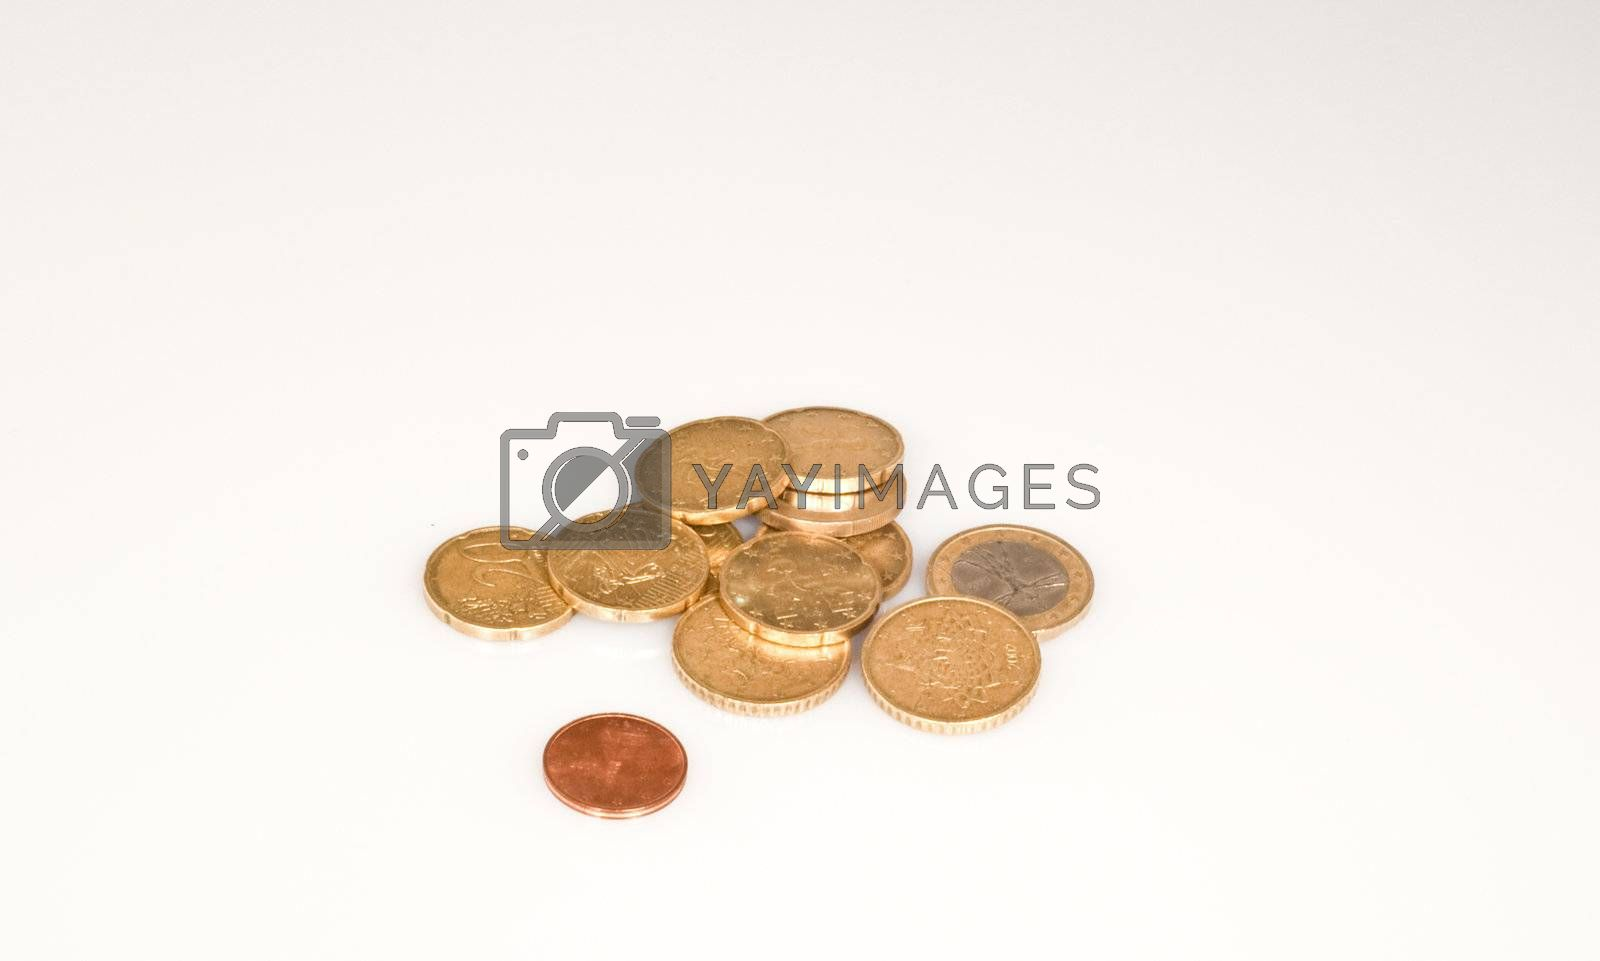 coins of different values on a white background